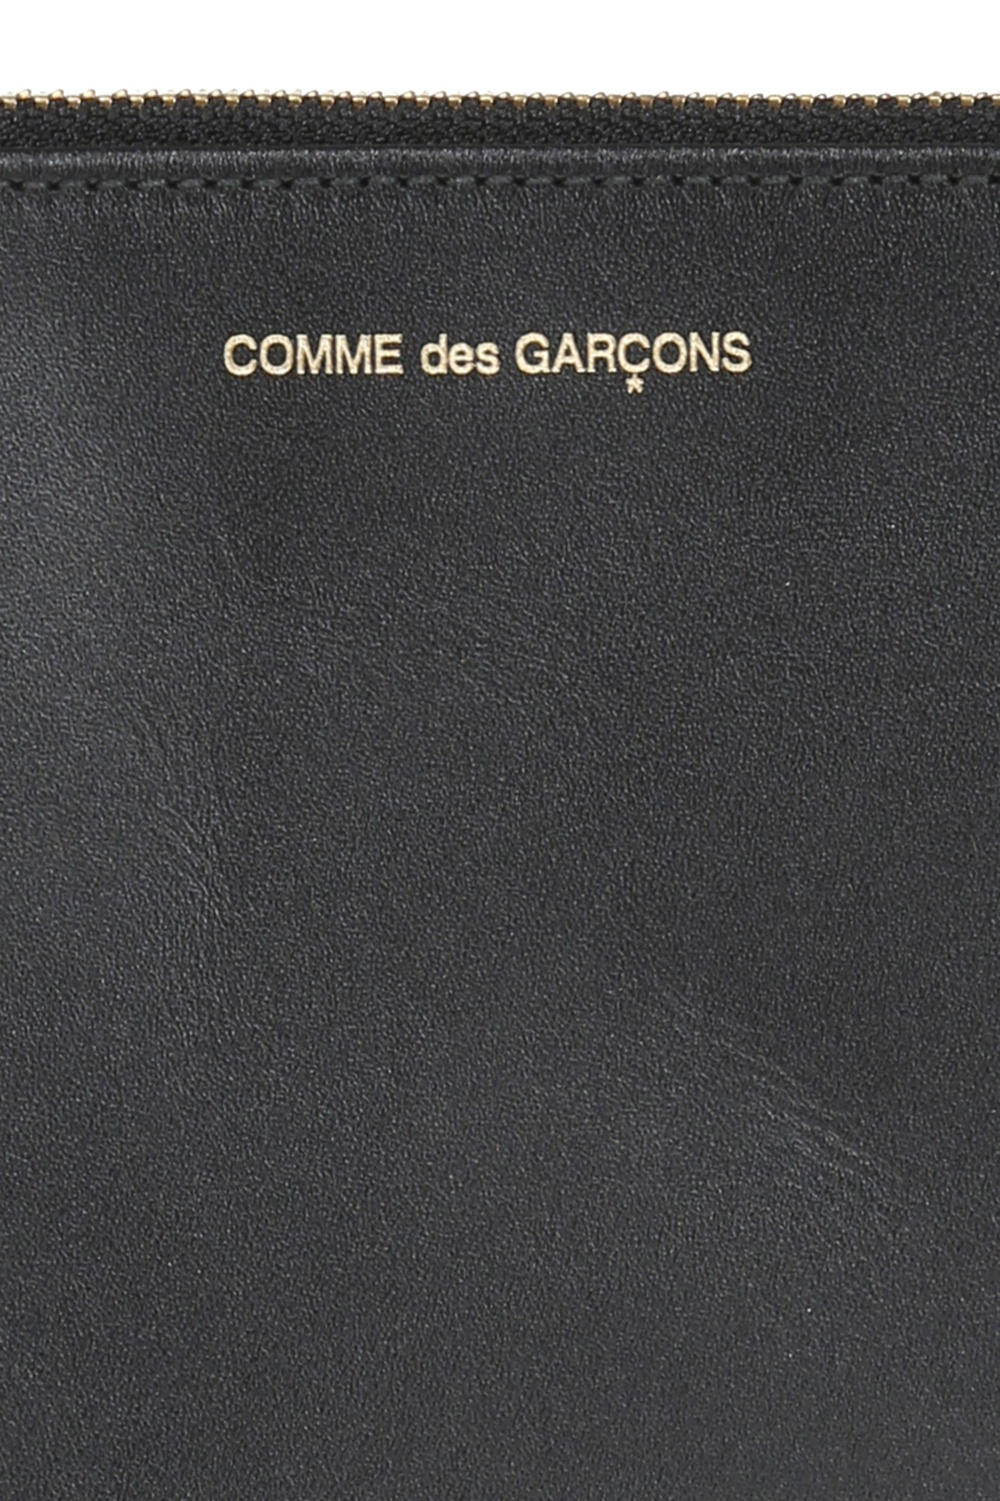 Comme des Garcons Embossed logo leather pouch